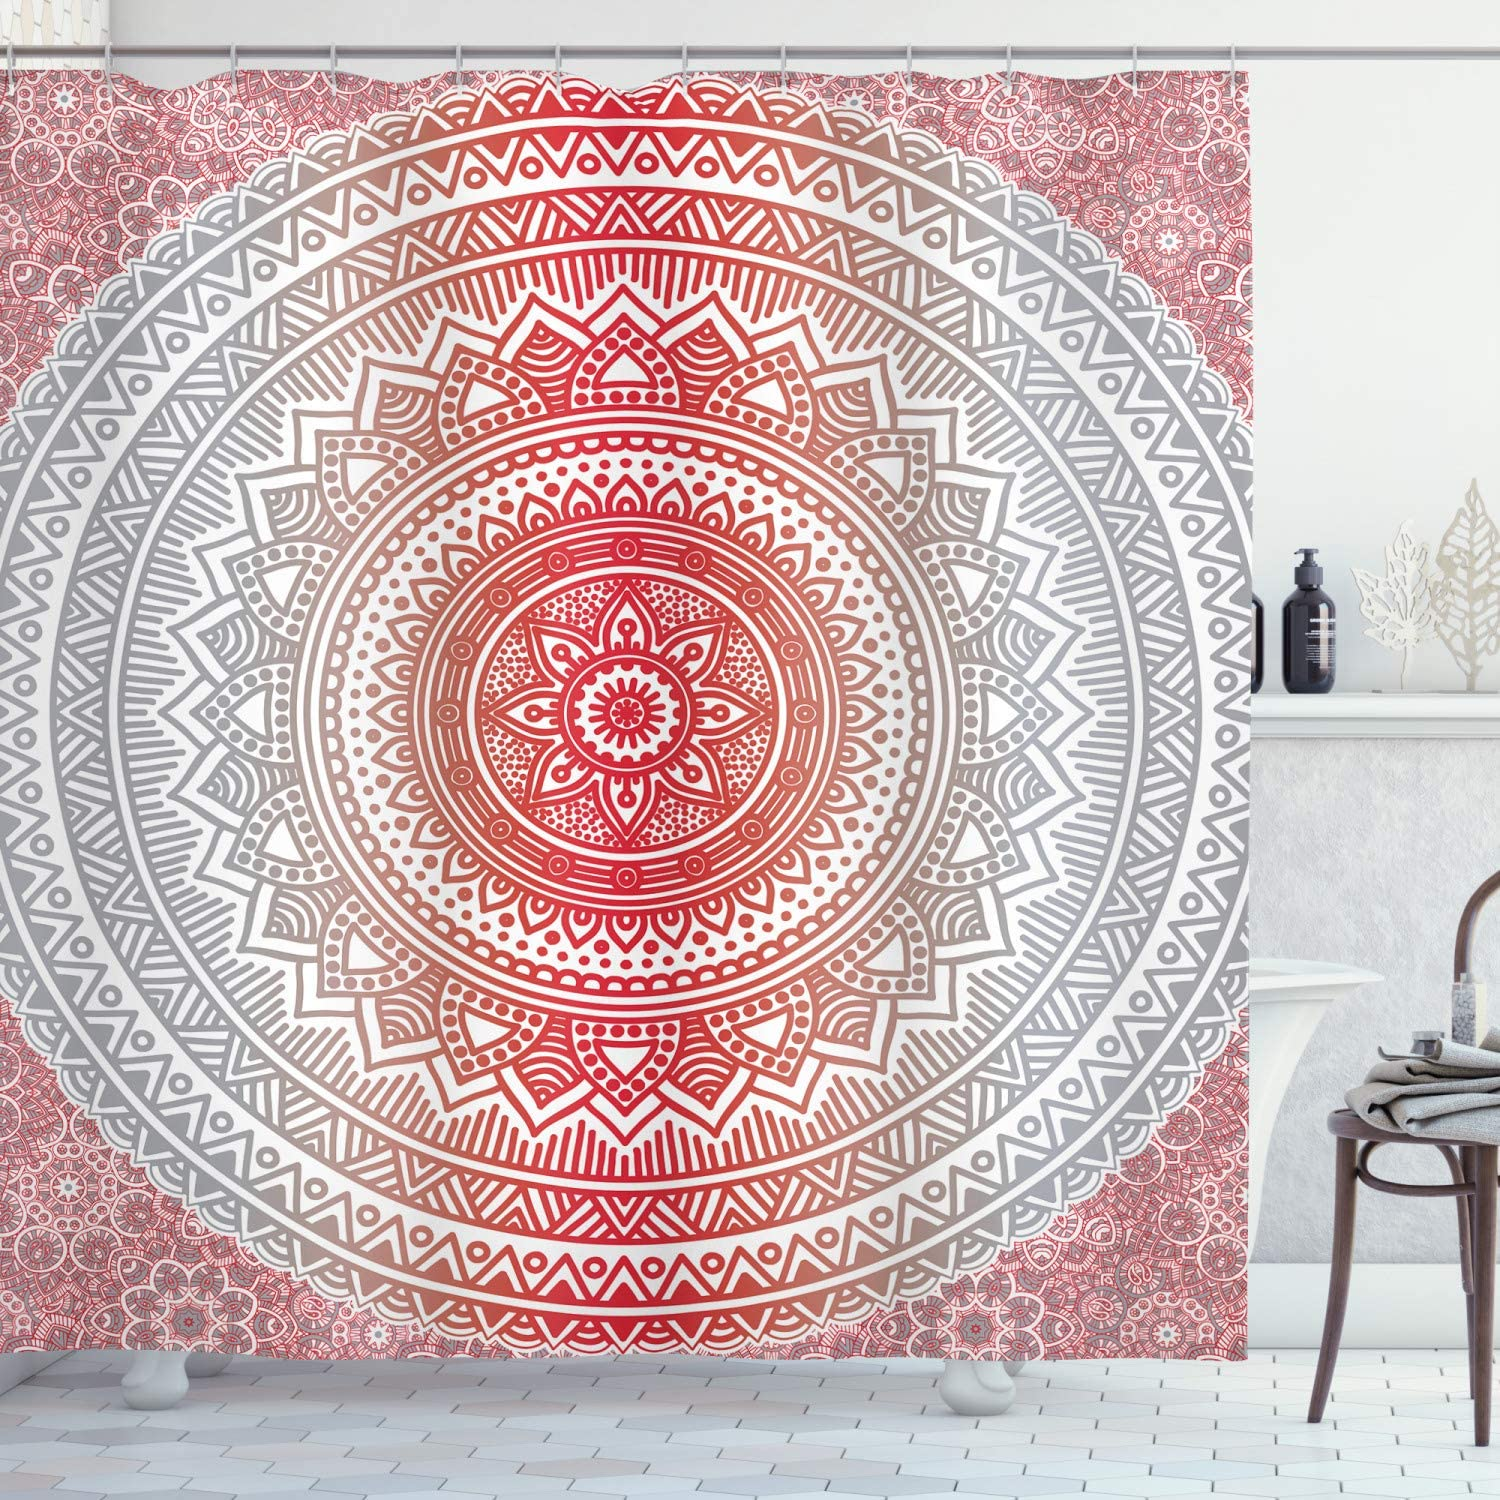 Fabric Bathroom Decor Set with Hooks 70 Inches Vermilion Grey Ambesonne Grey and Red Shower Curtain Hippie Ombre Mandala Cosmos Pattern with Flower Geometric Figures Indie Image